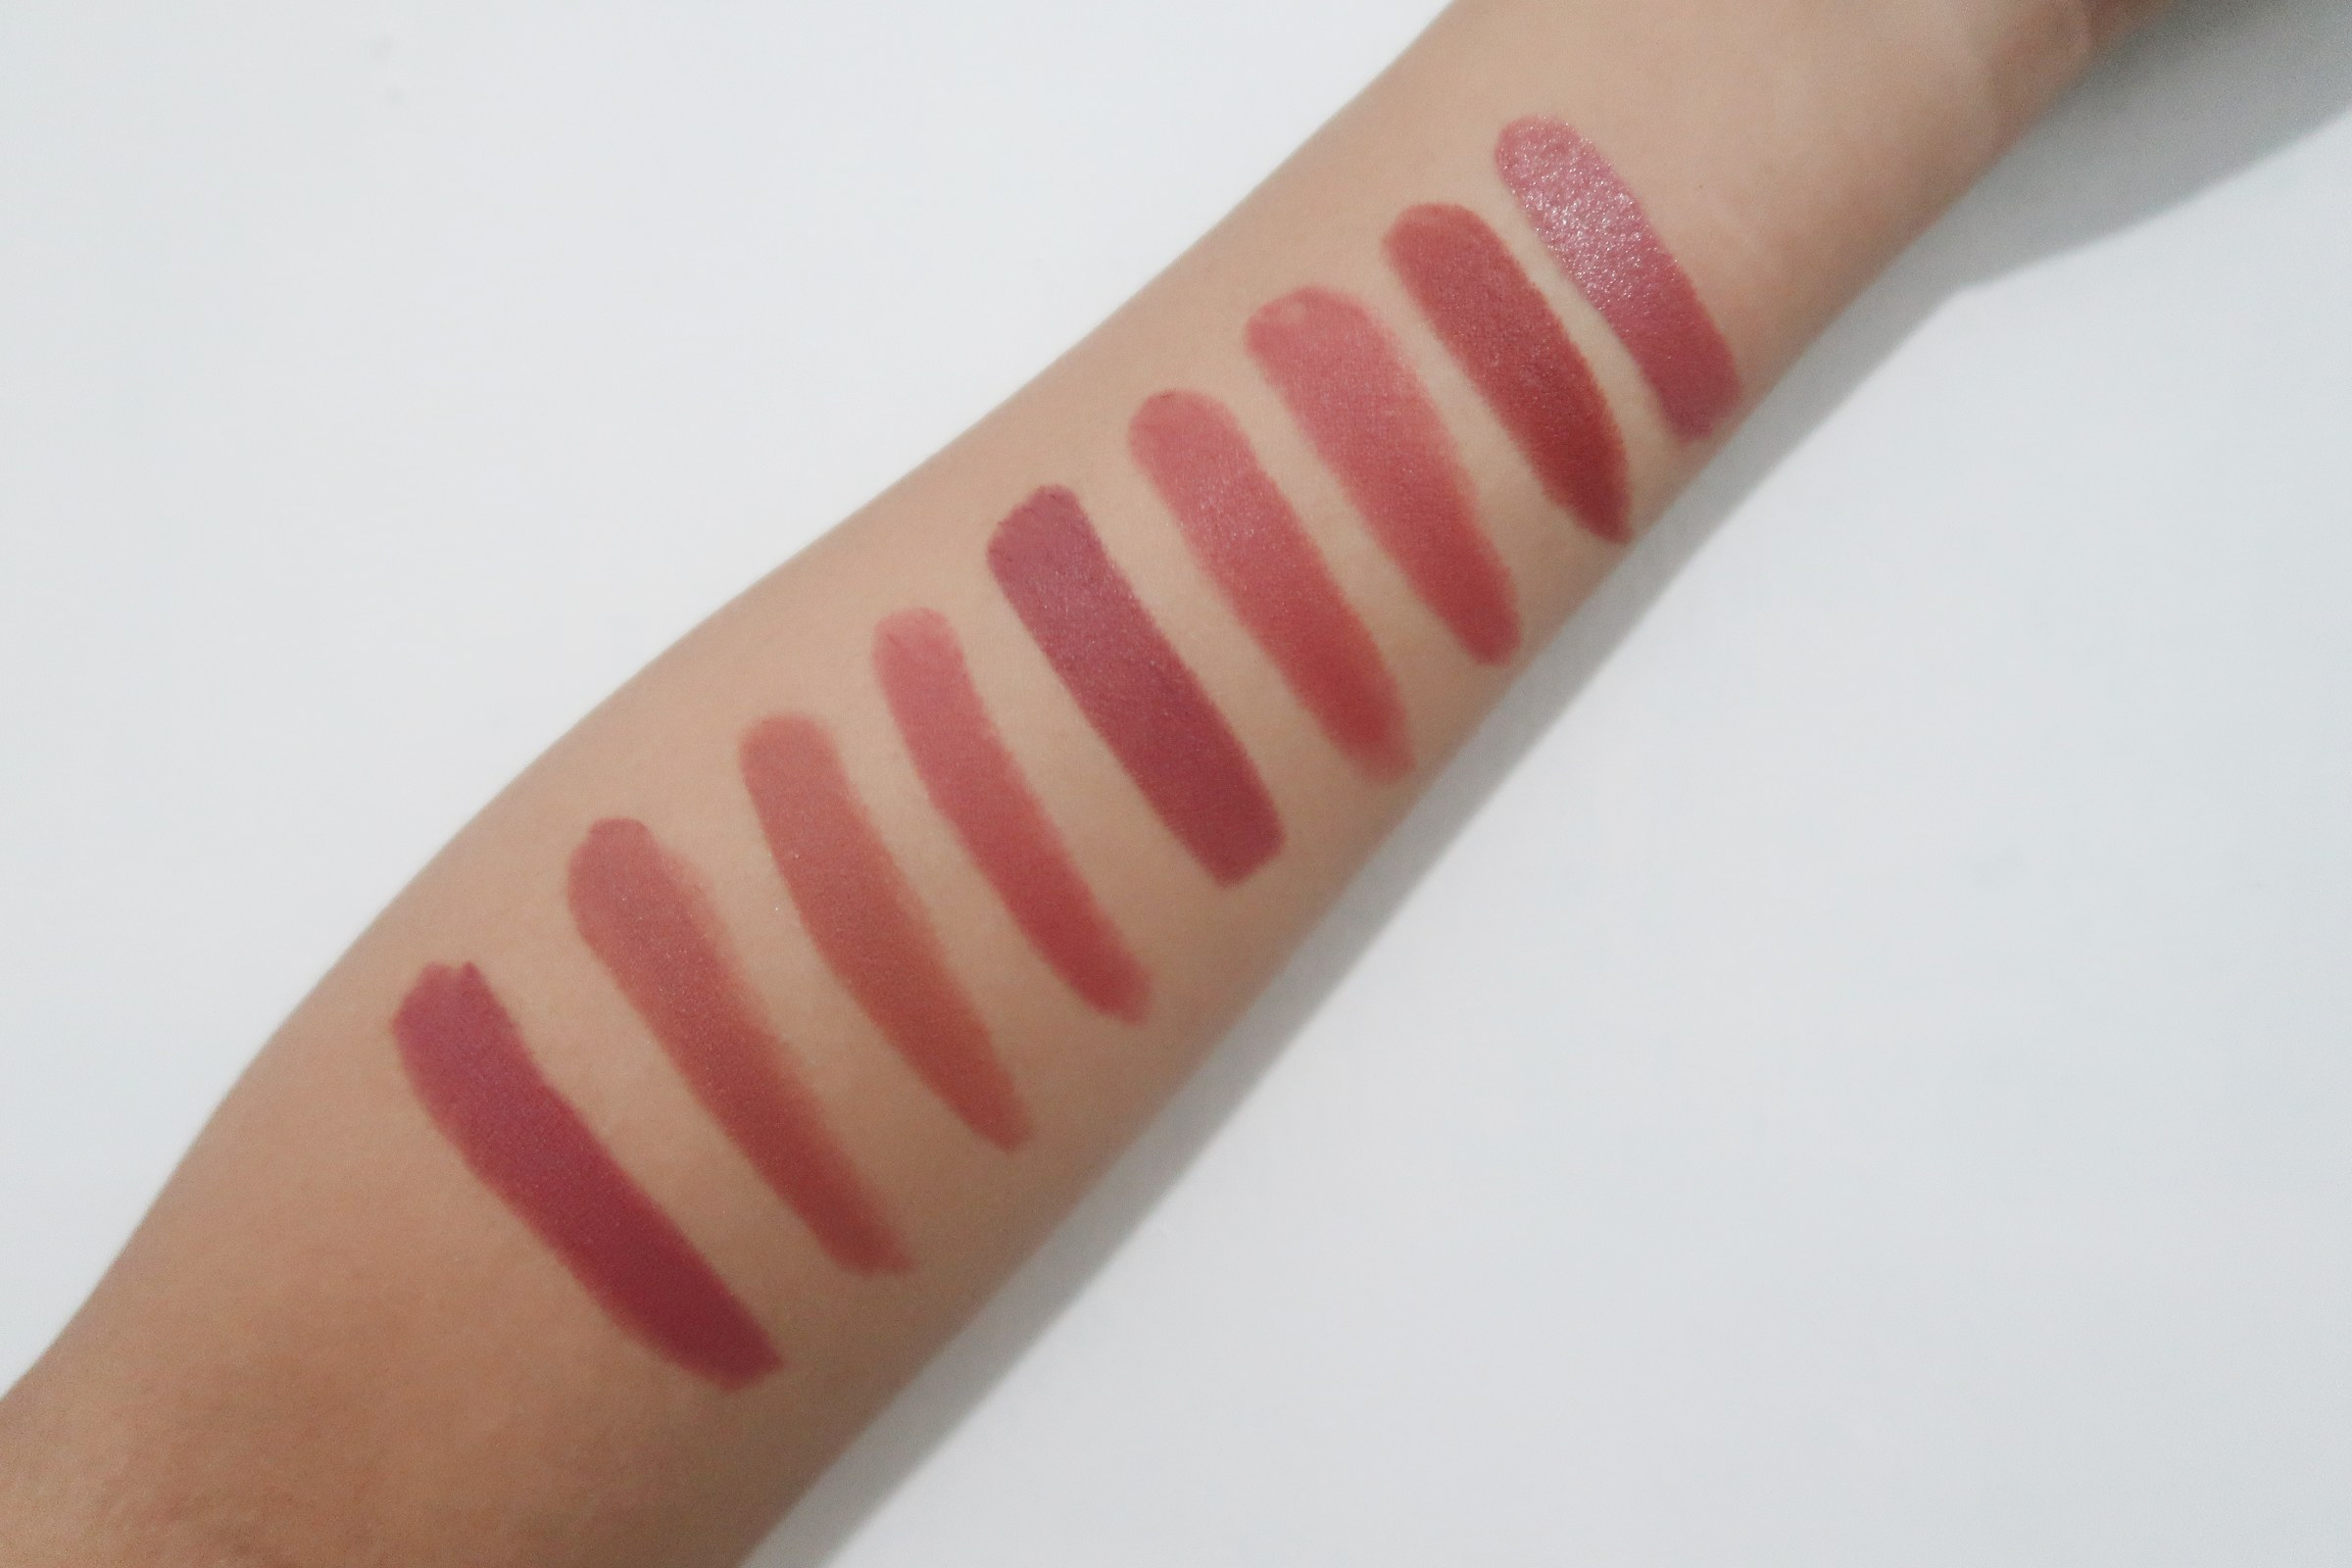 Swatches, from left: Honeymoon Glow, Breakfast in Bed, Clay Crush, Touch of Nude, Touch of Spice, Rose Nuance, Itetch, Elegant, and Cosmo